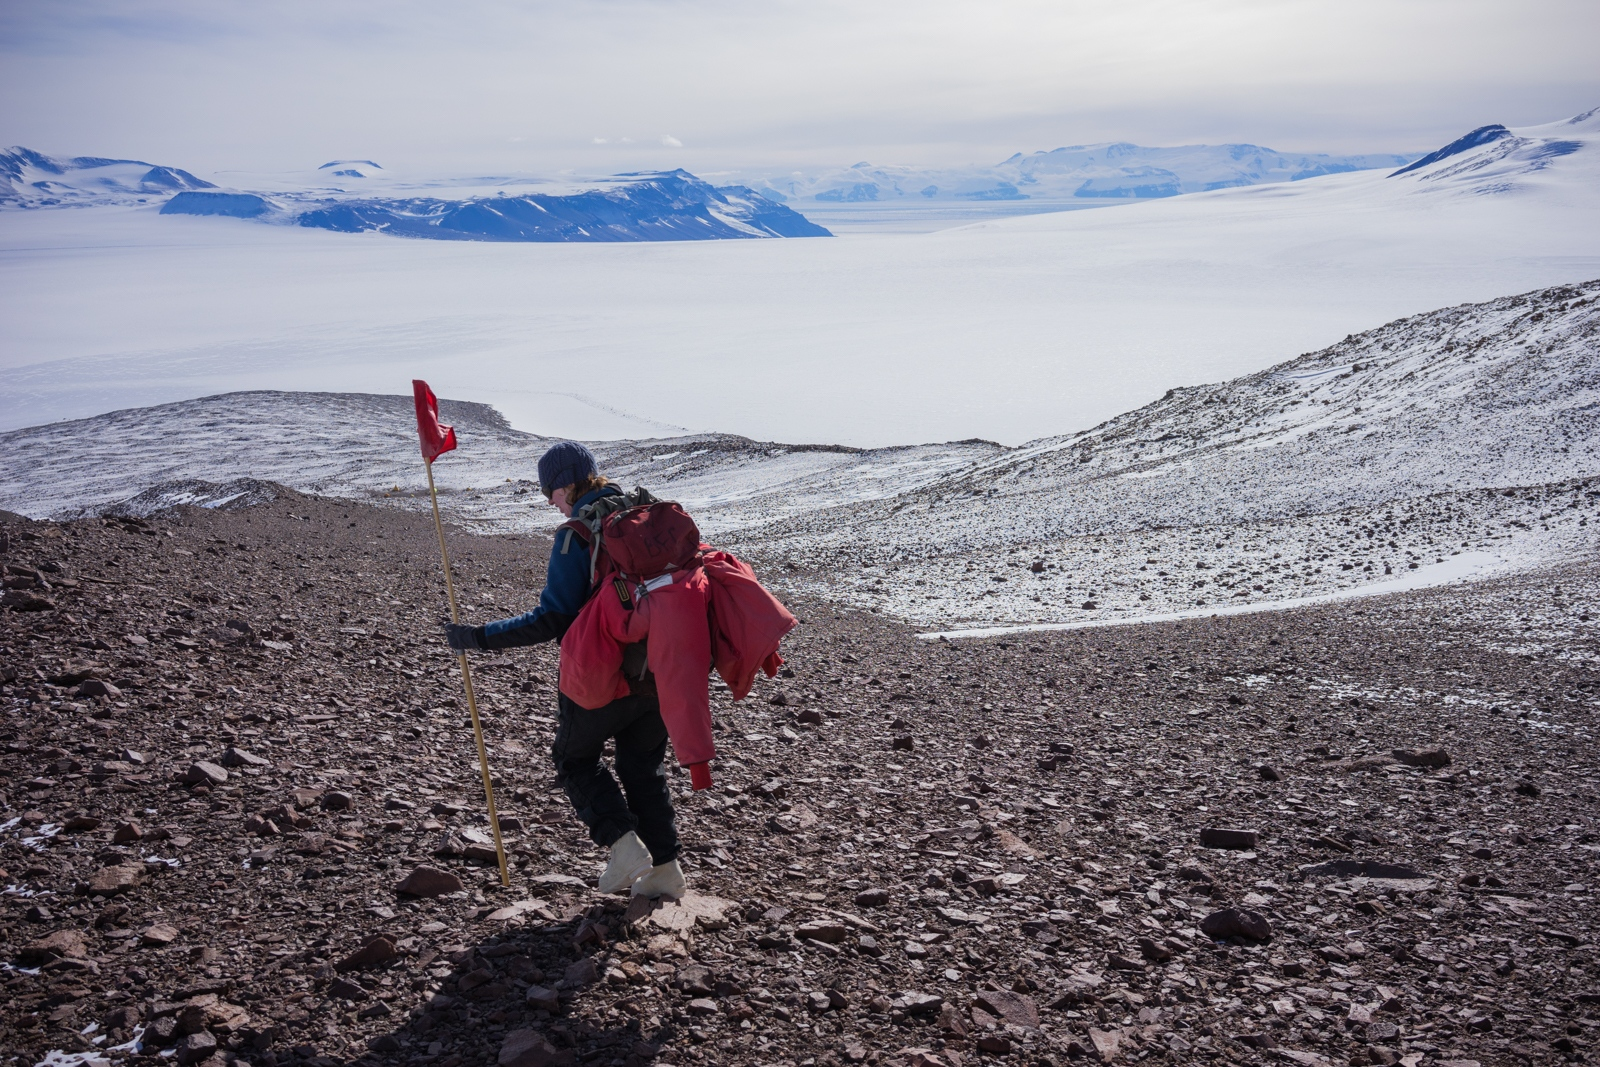 Dr. Patricia Ryberg walking on Graphite Peak (10,700 ft.) after a day collecting plant fossils. 22 December 2017. The expanse of the Transantarctics and the Falkenhof Glacier extends in the distance.